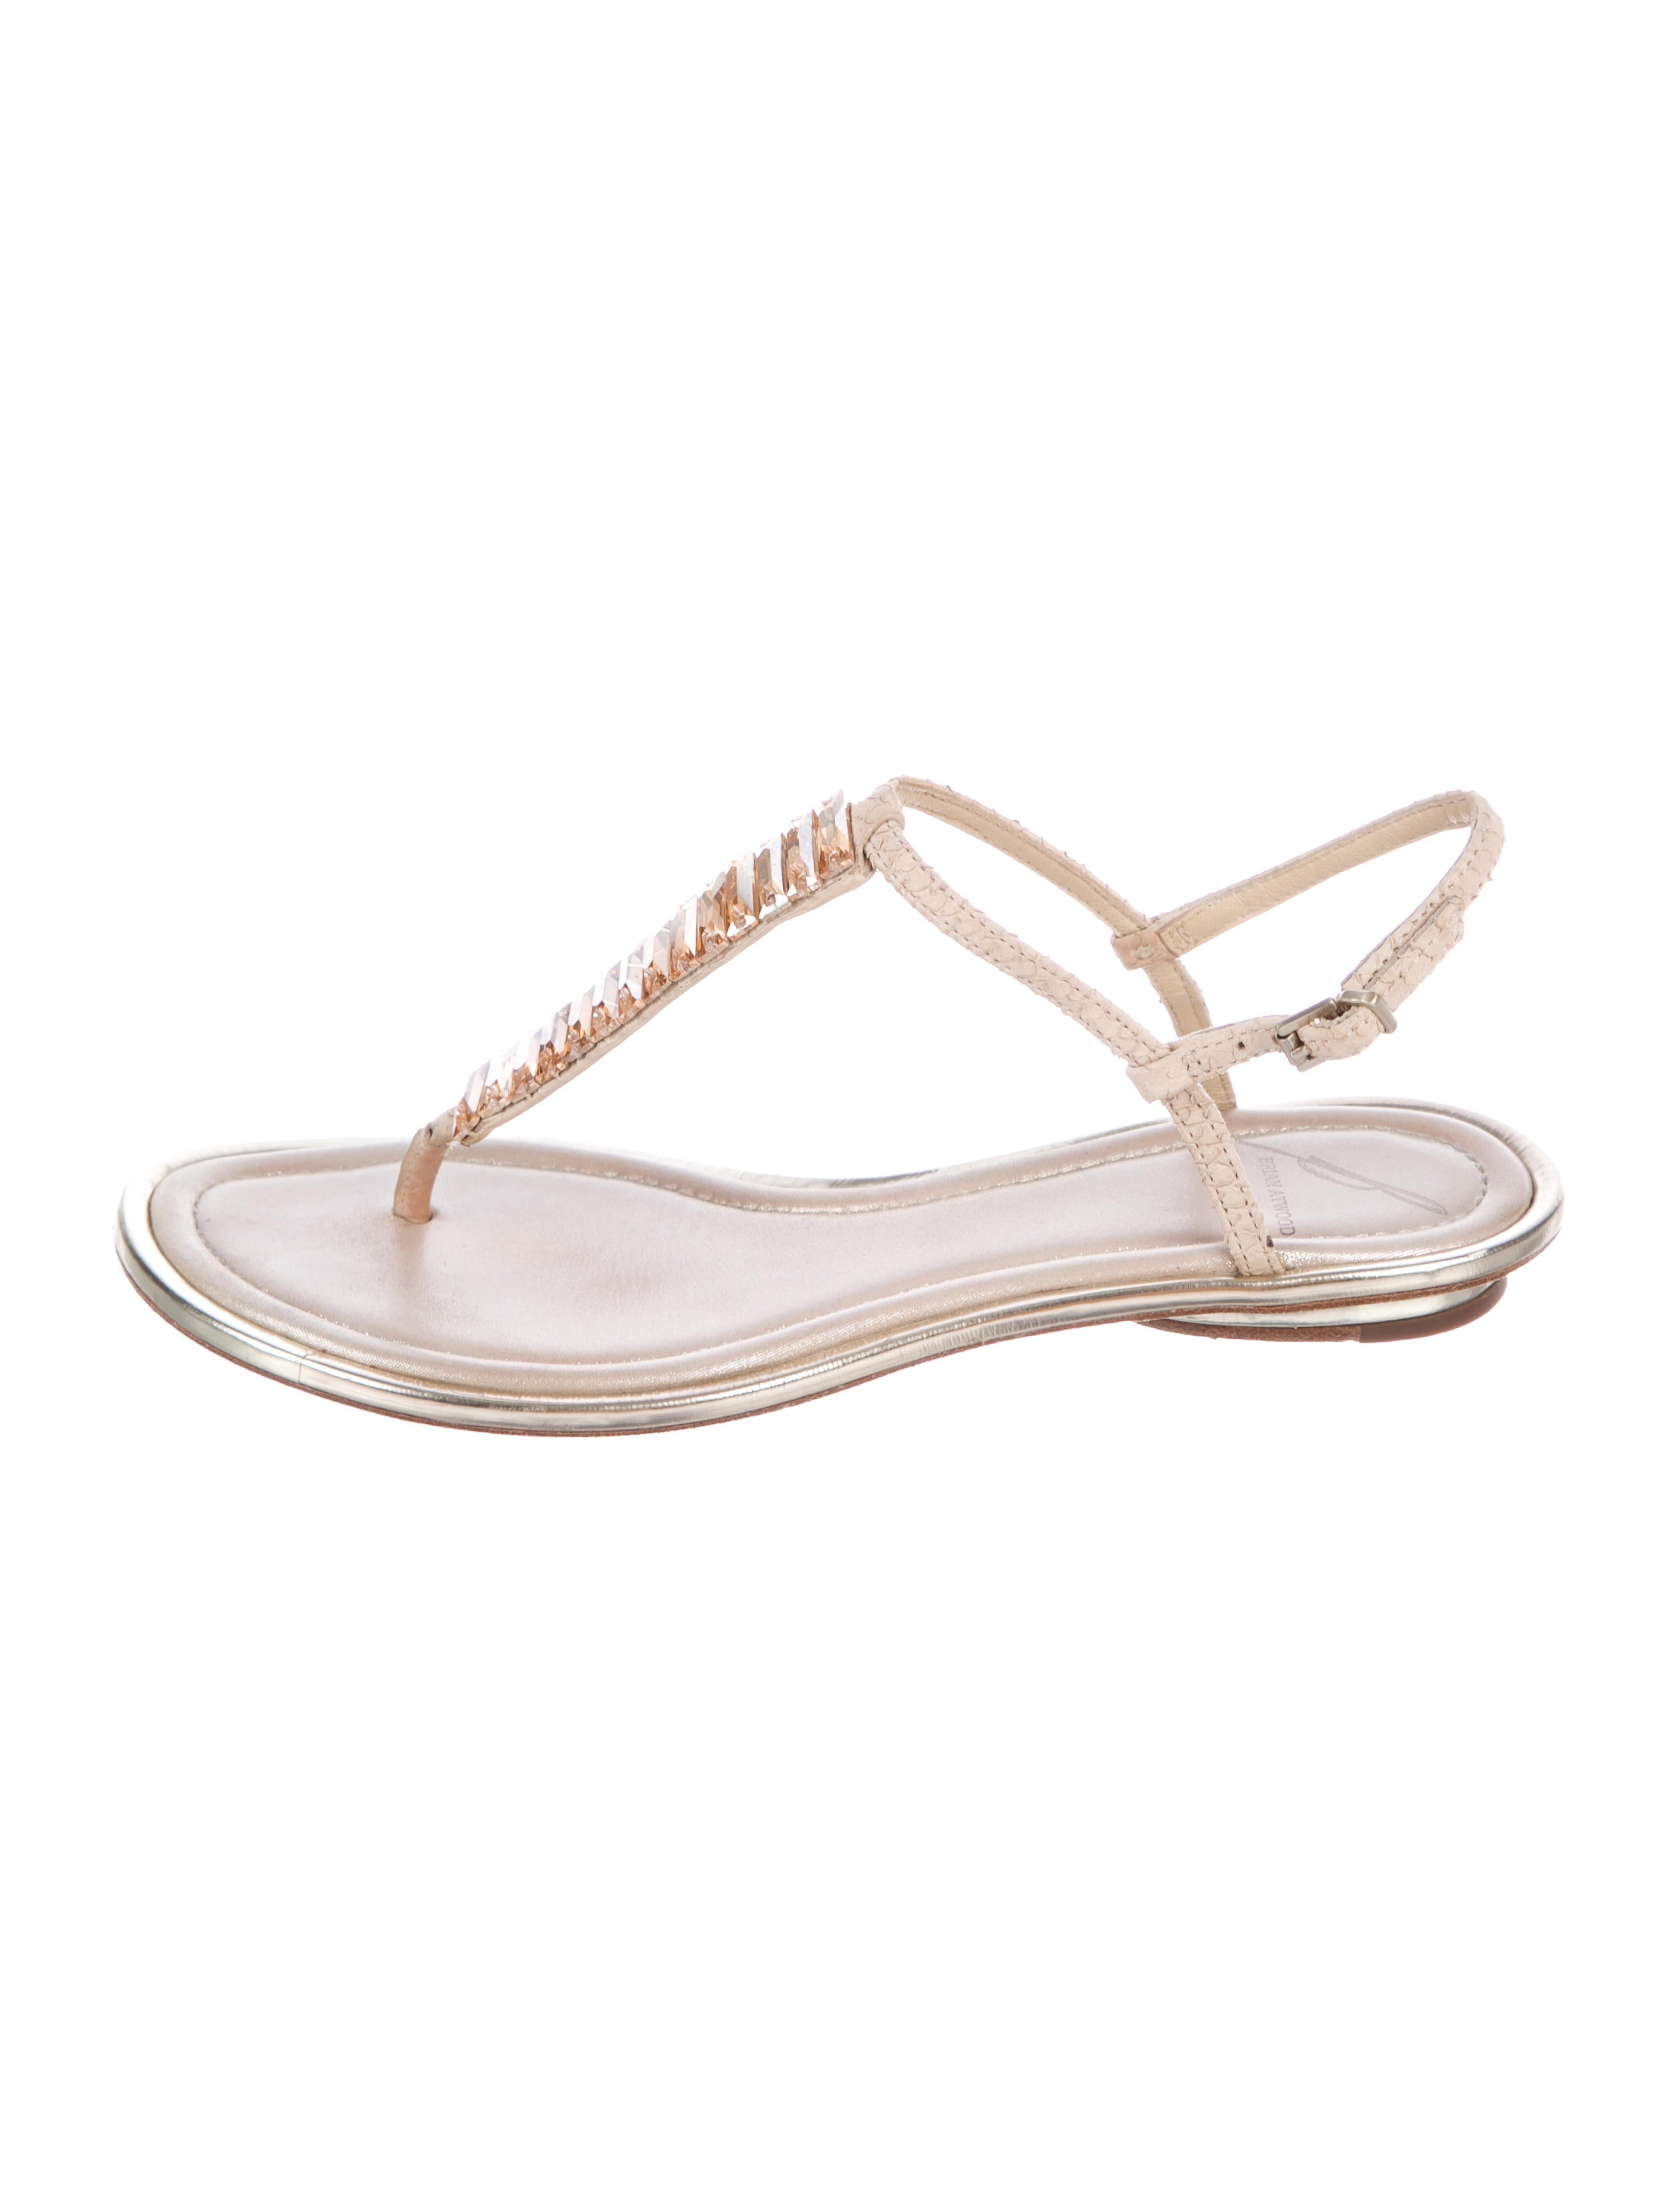 B Brian Atwood Callas Embellished Sandals outlet visit new free shipping pictures countdown package lRXKl2